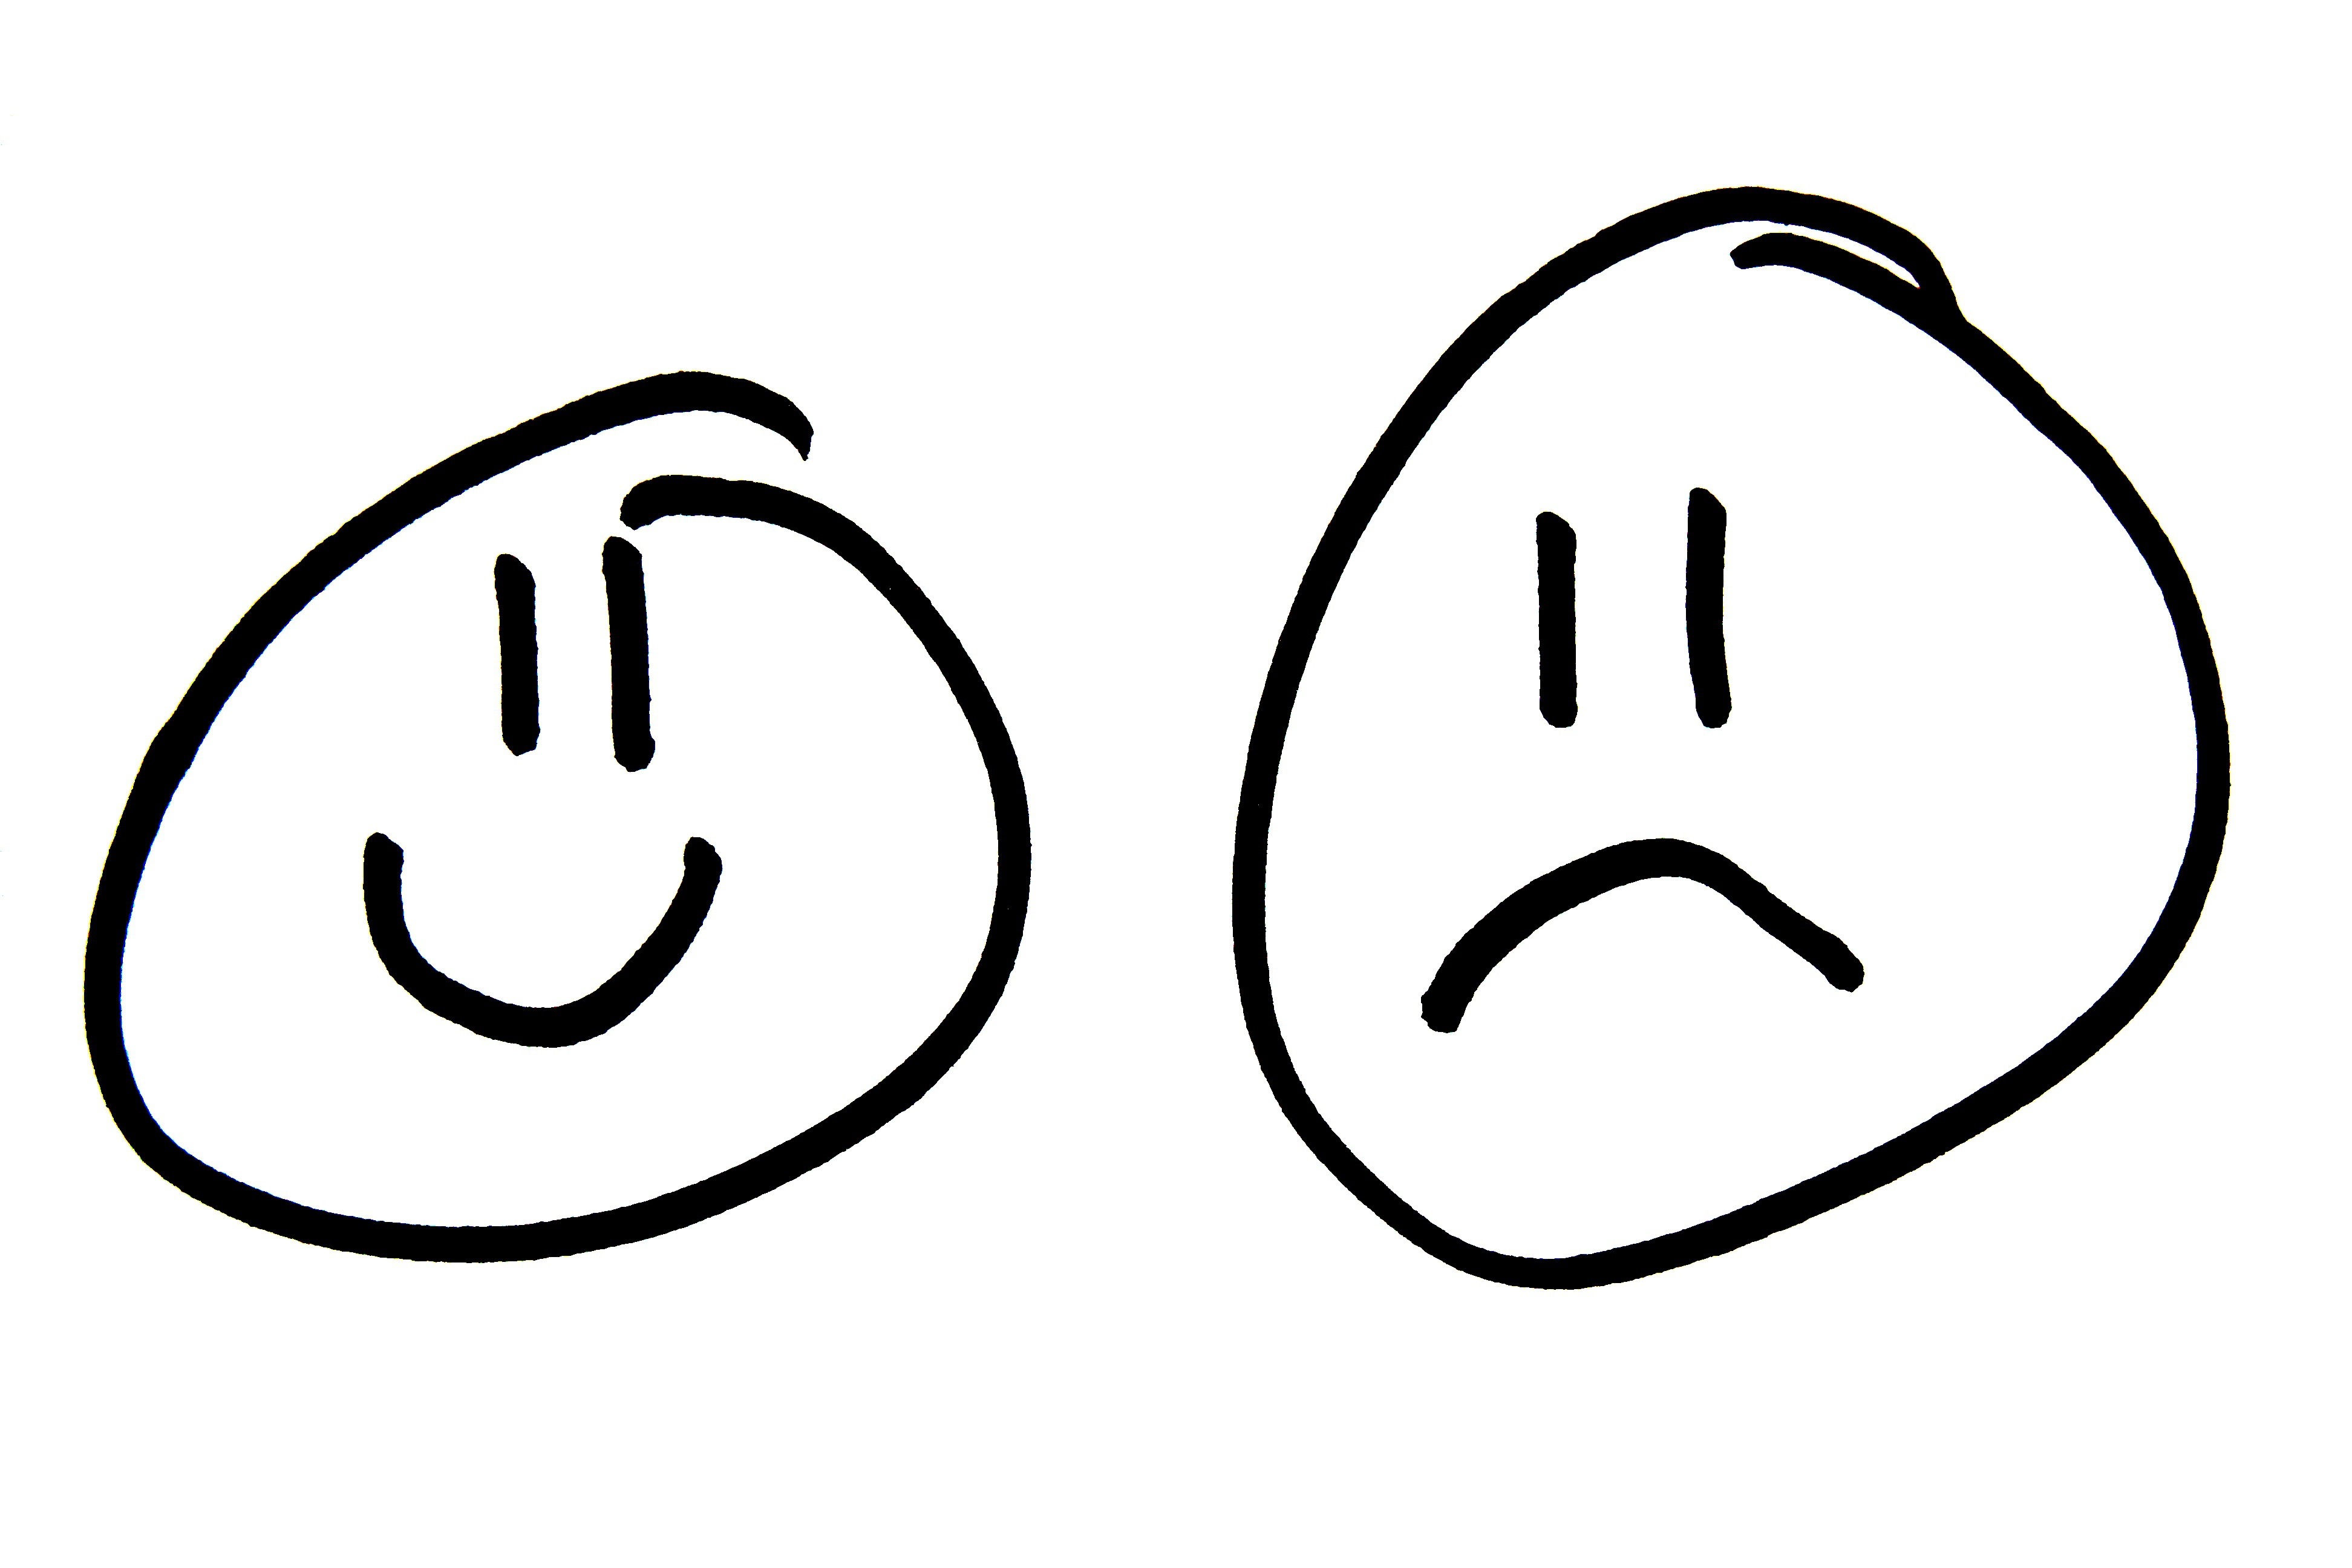 Sad face smiley face clipart black and white free clipart